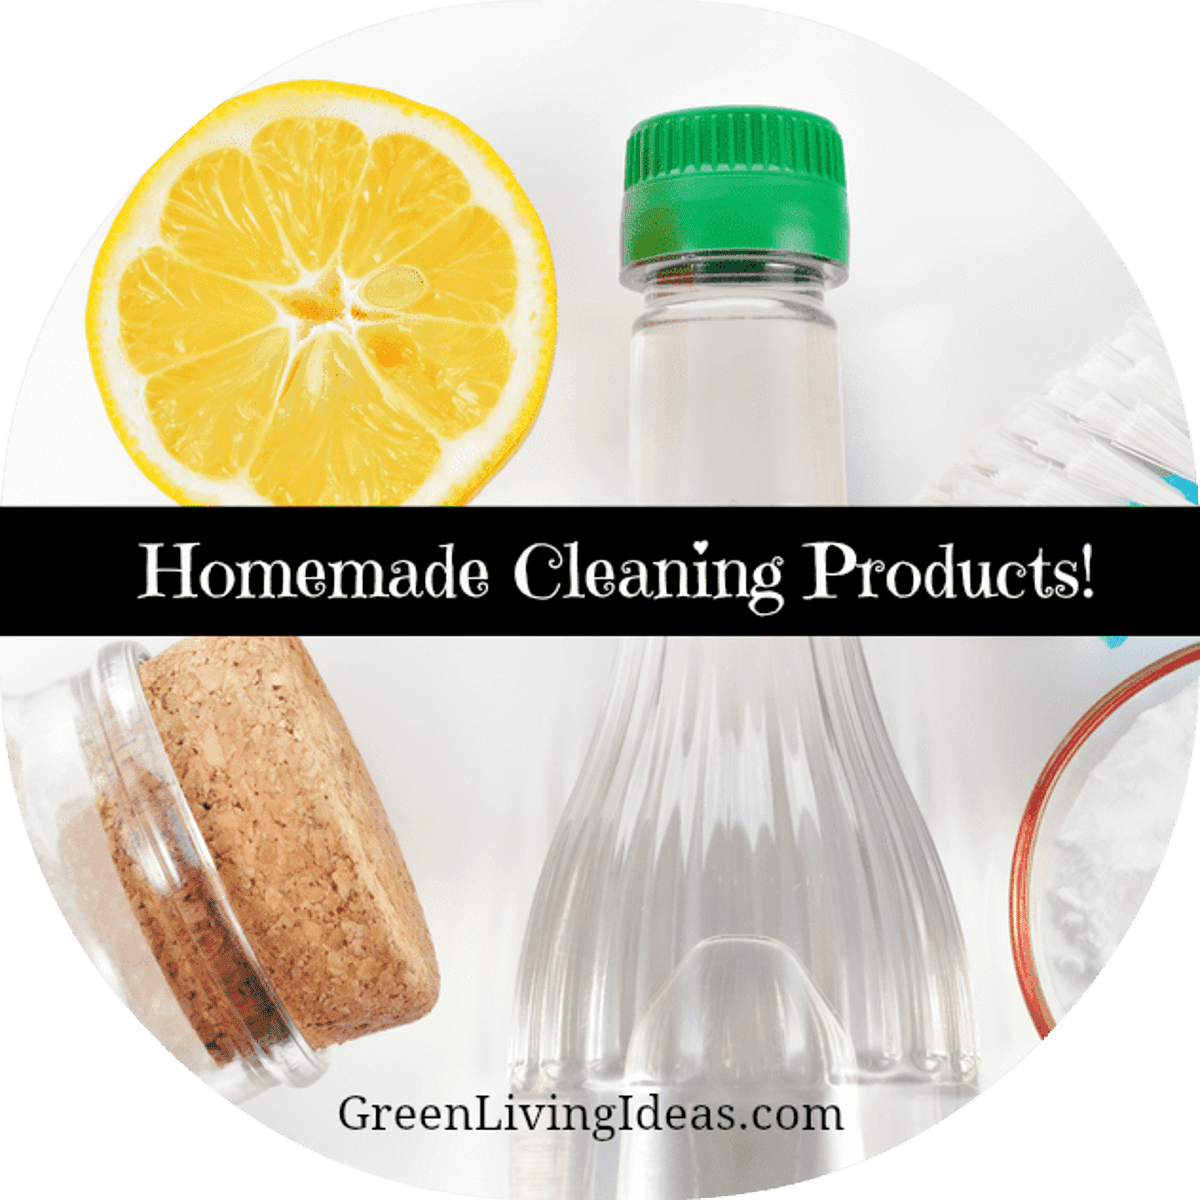 Homemade Cleaning Products: The Best